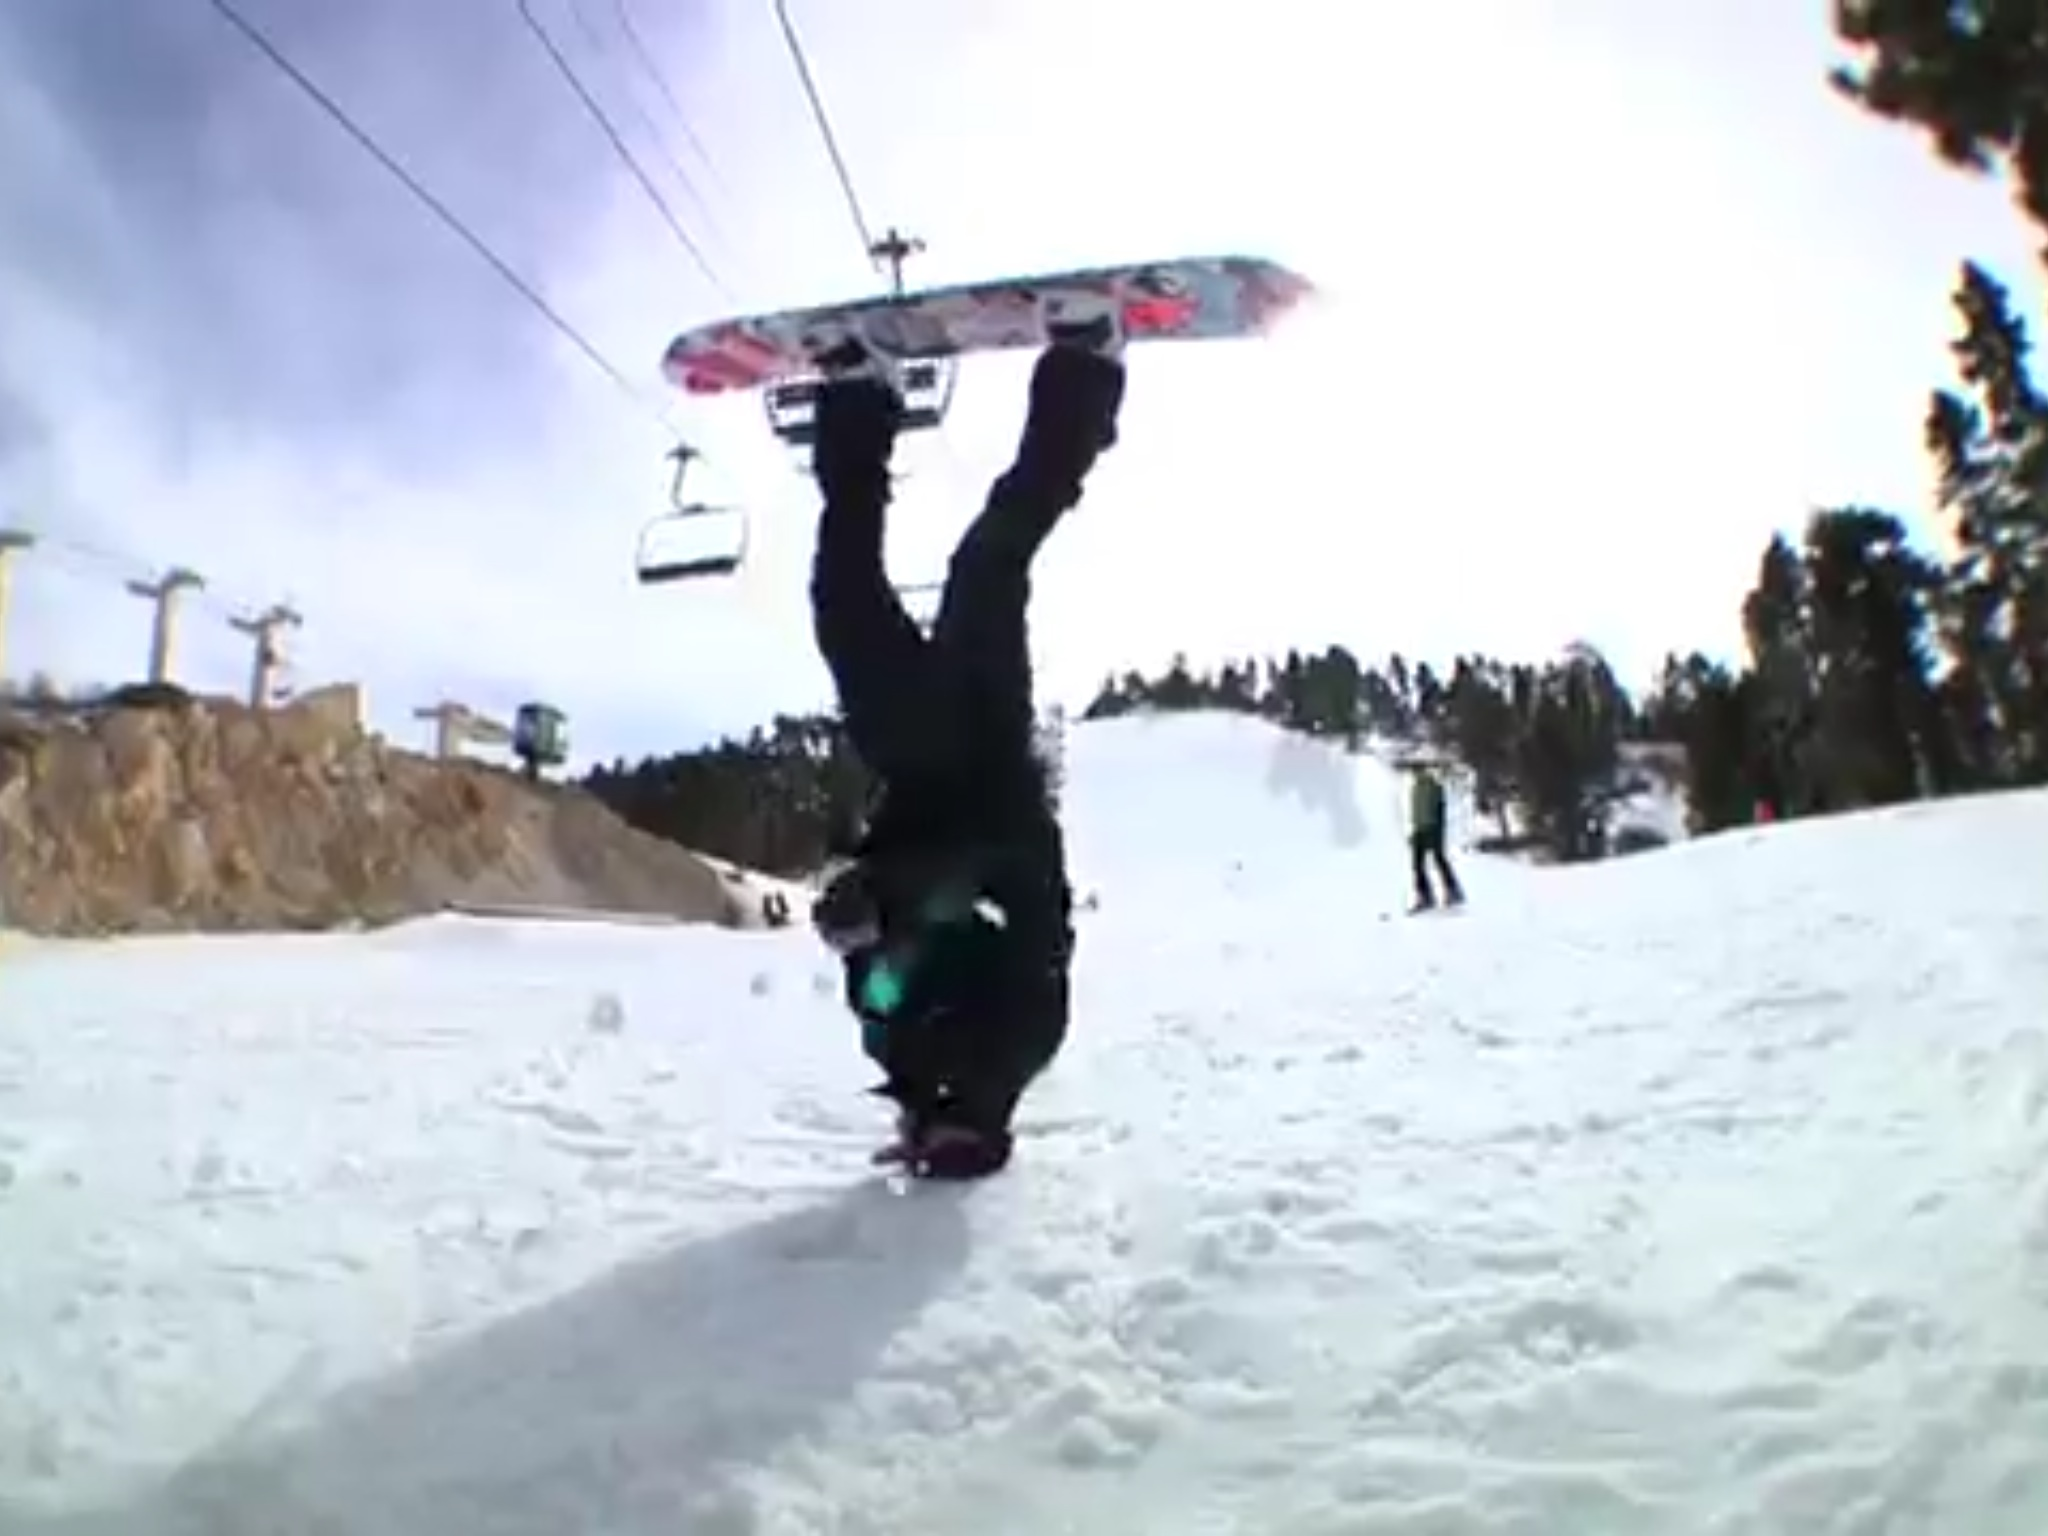 Bear Mountain's Sunday In The Park 2014: Ep 10